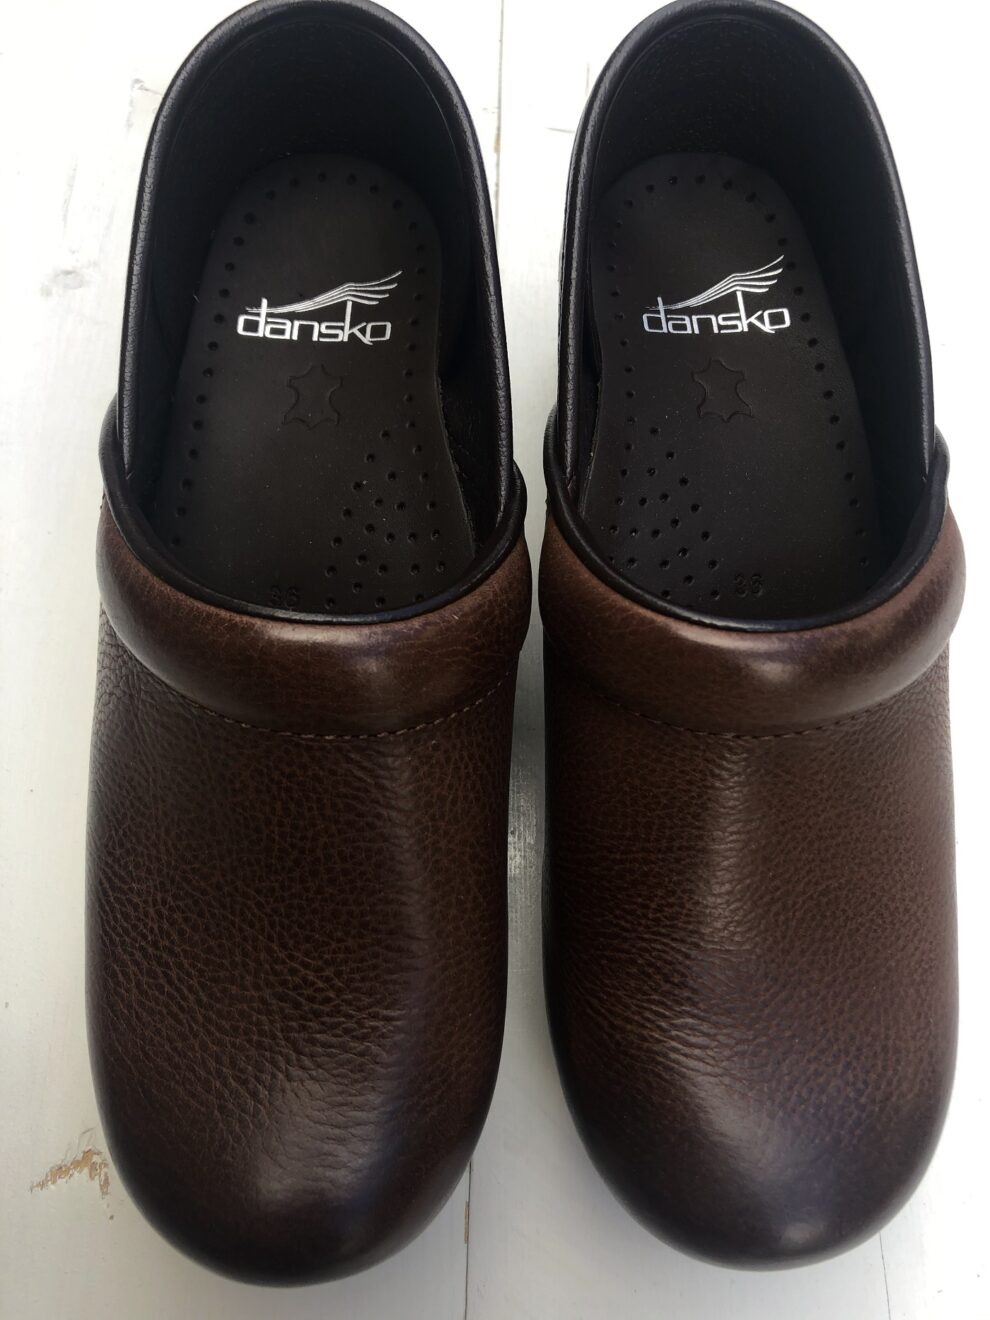 Dansko Professional Burnished Nubuck